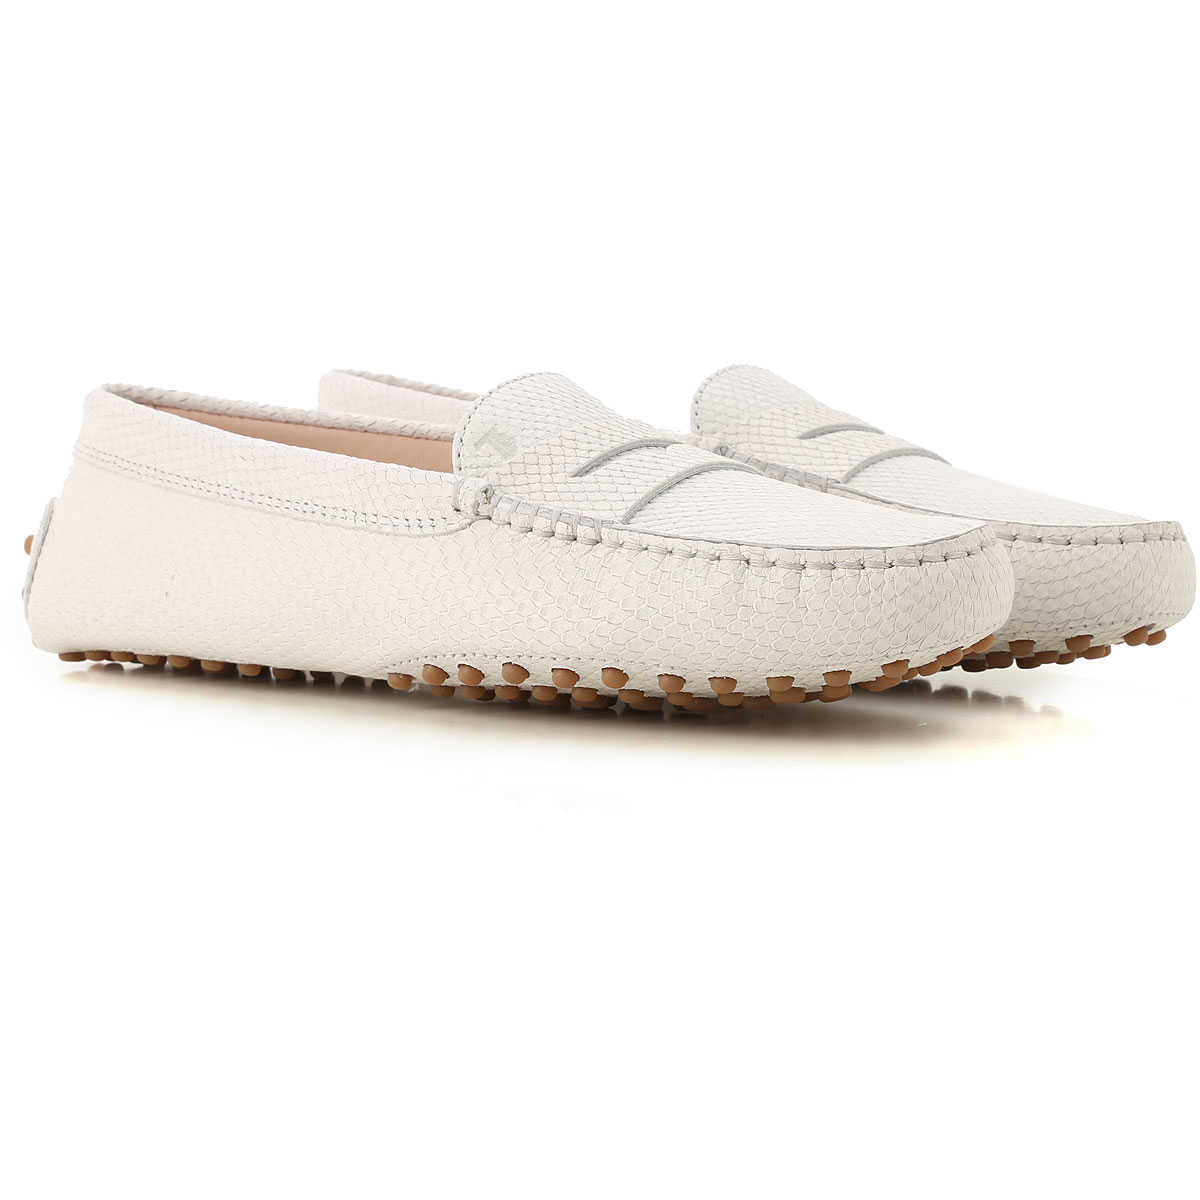 Tods Loafers for Women Leather - GOOFASH